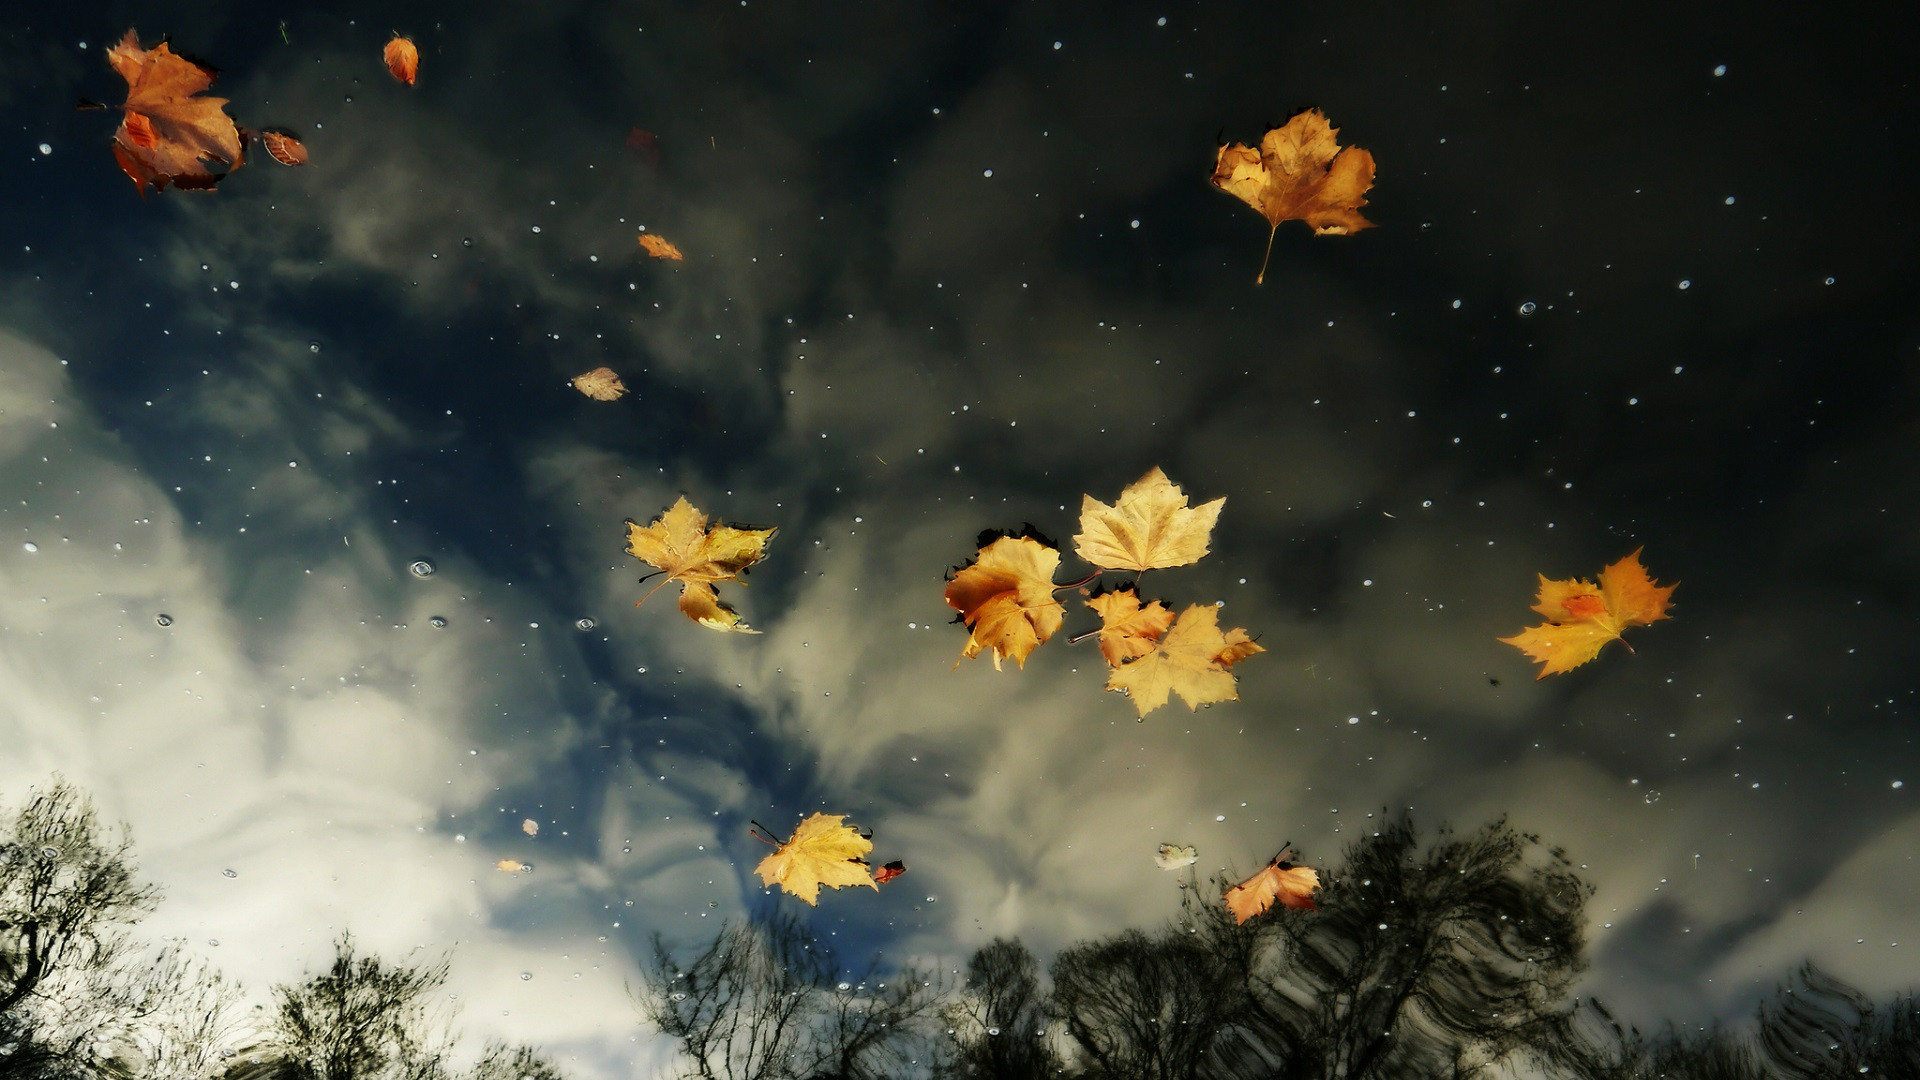 Download Sky Reflection In River With Leaves